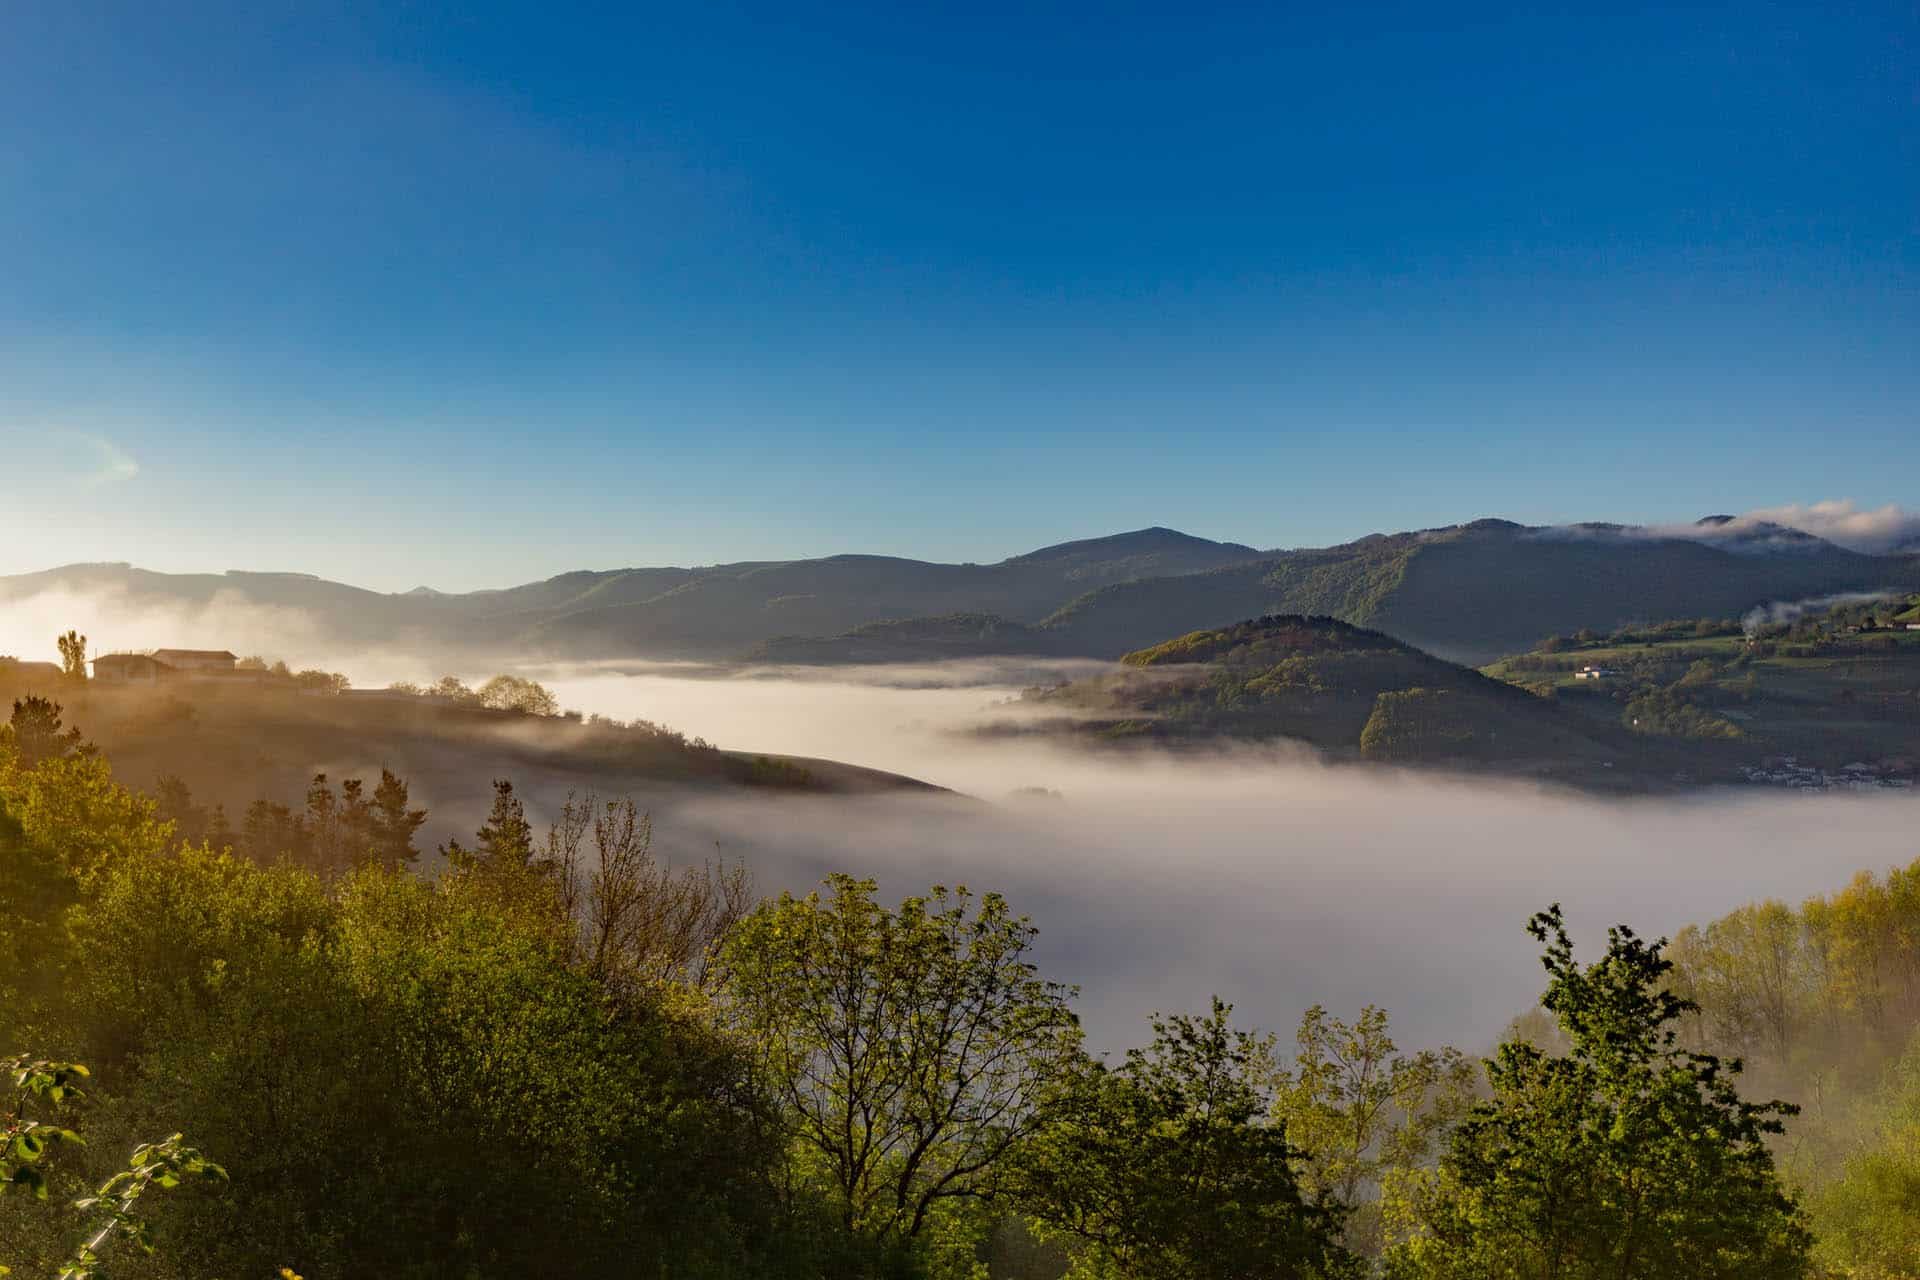 Pyrenean Experience - Morning misty at Baque Country Mountains